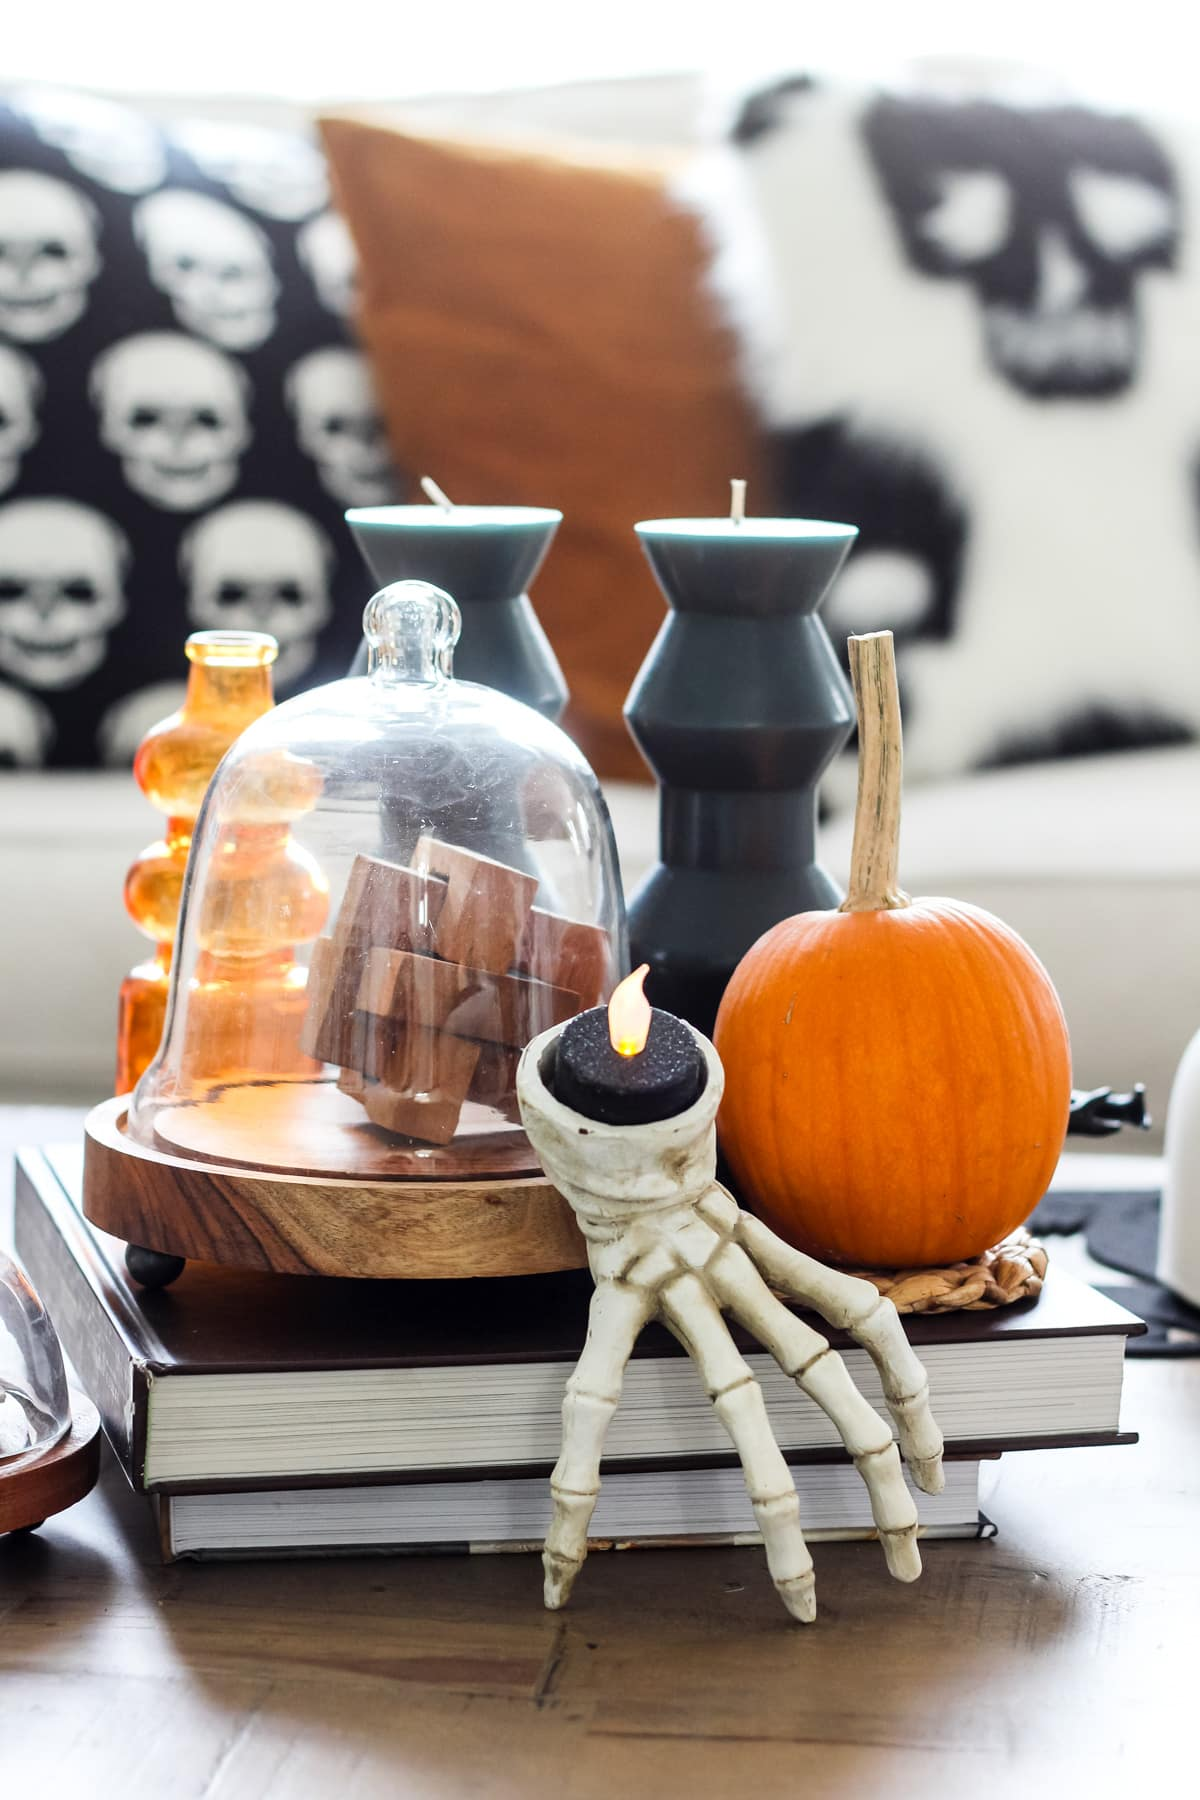 a wooden coffee table filled with Halloween decorations